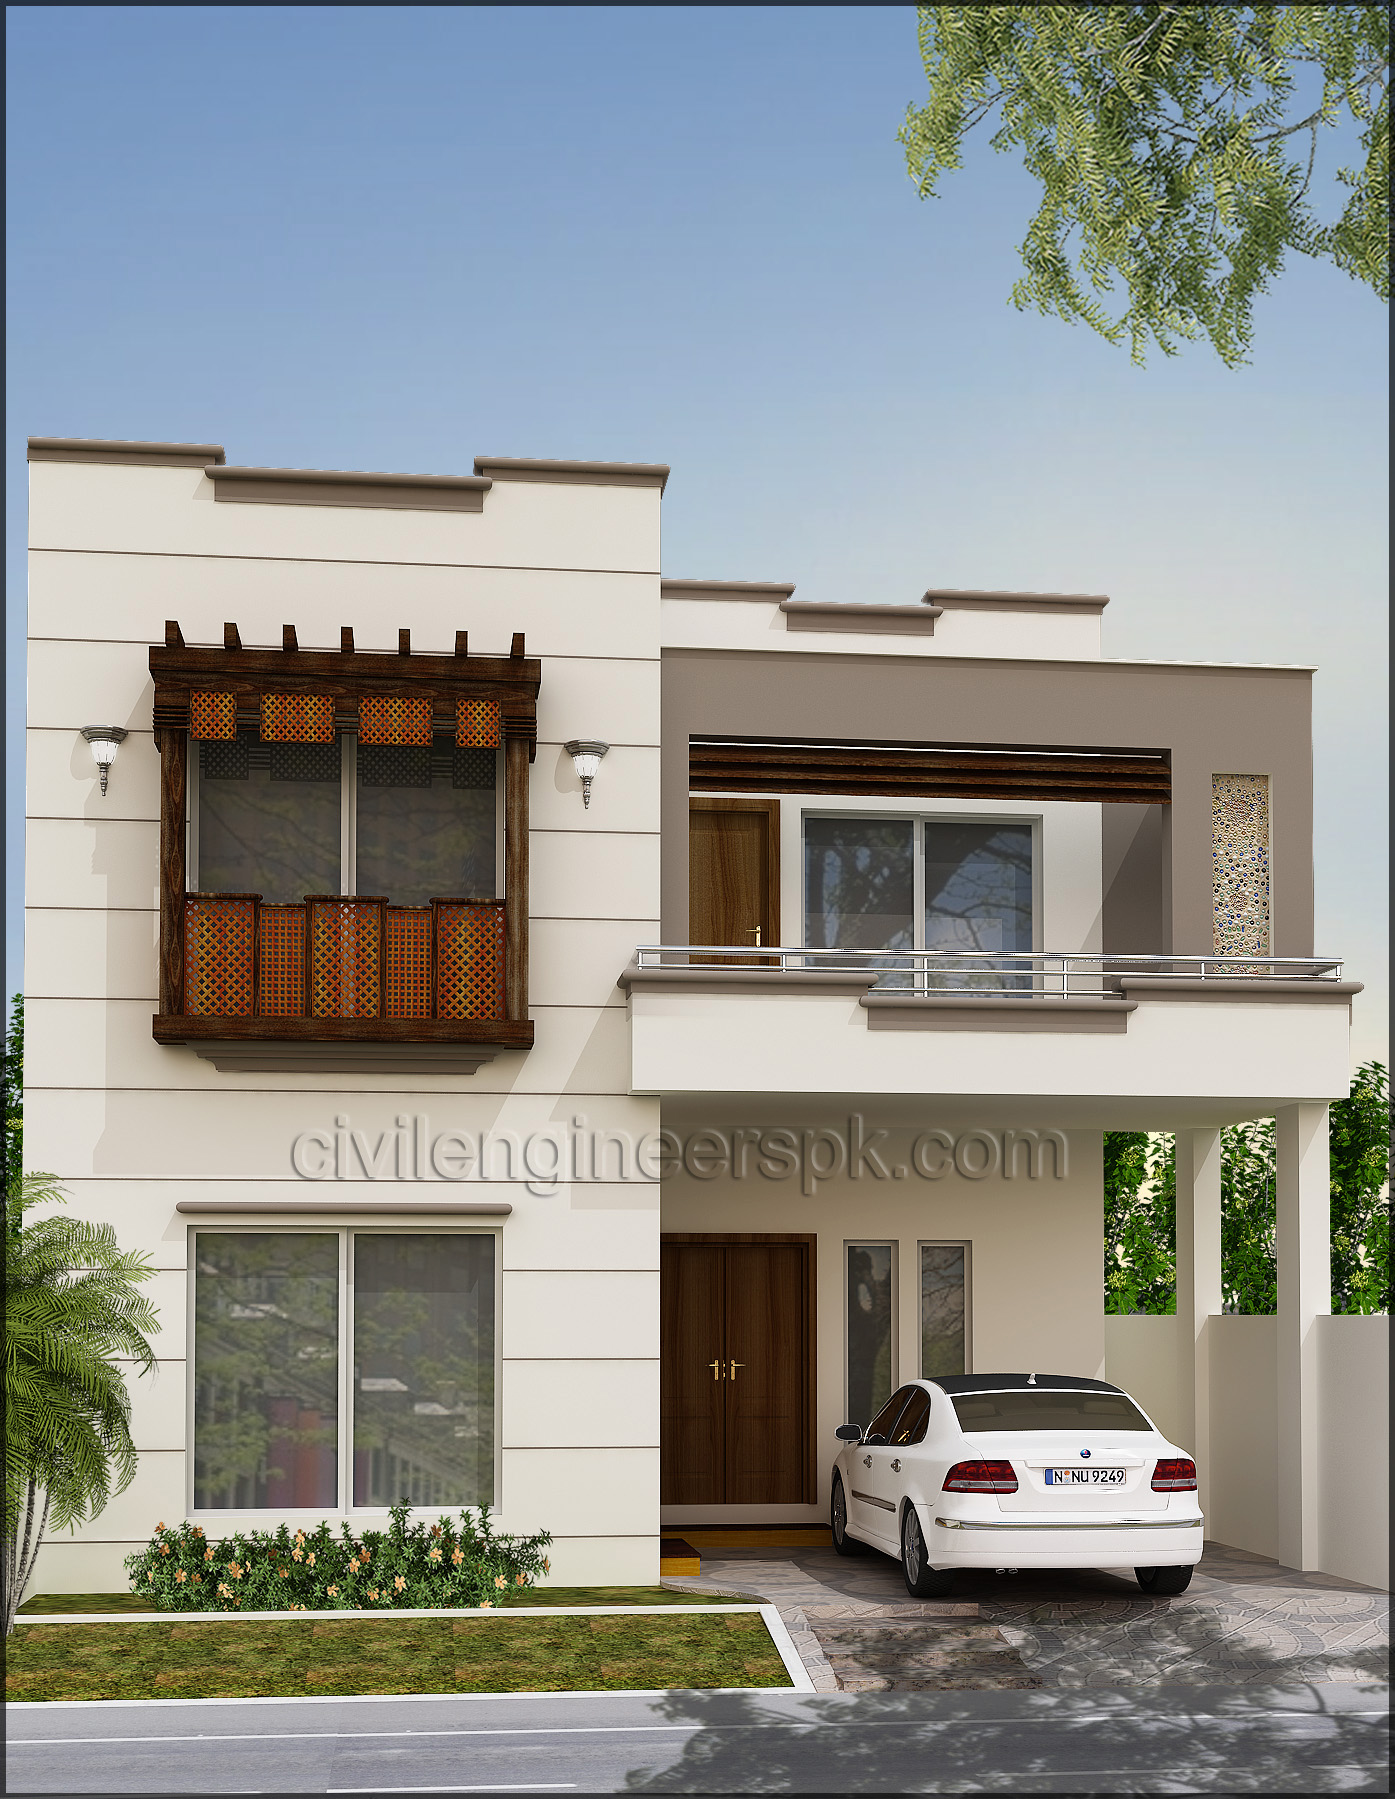 Front View Elevation Of House Plans : House front views civil engineers pk